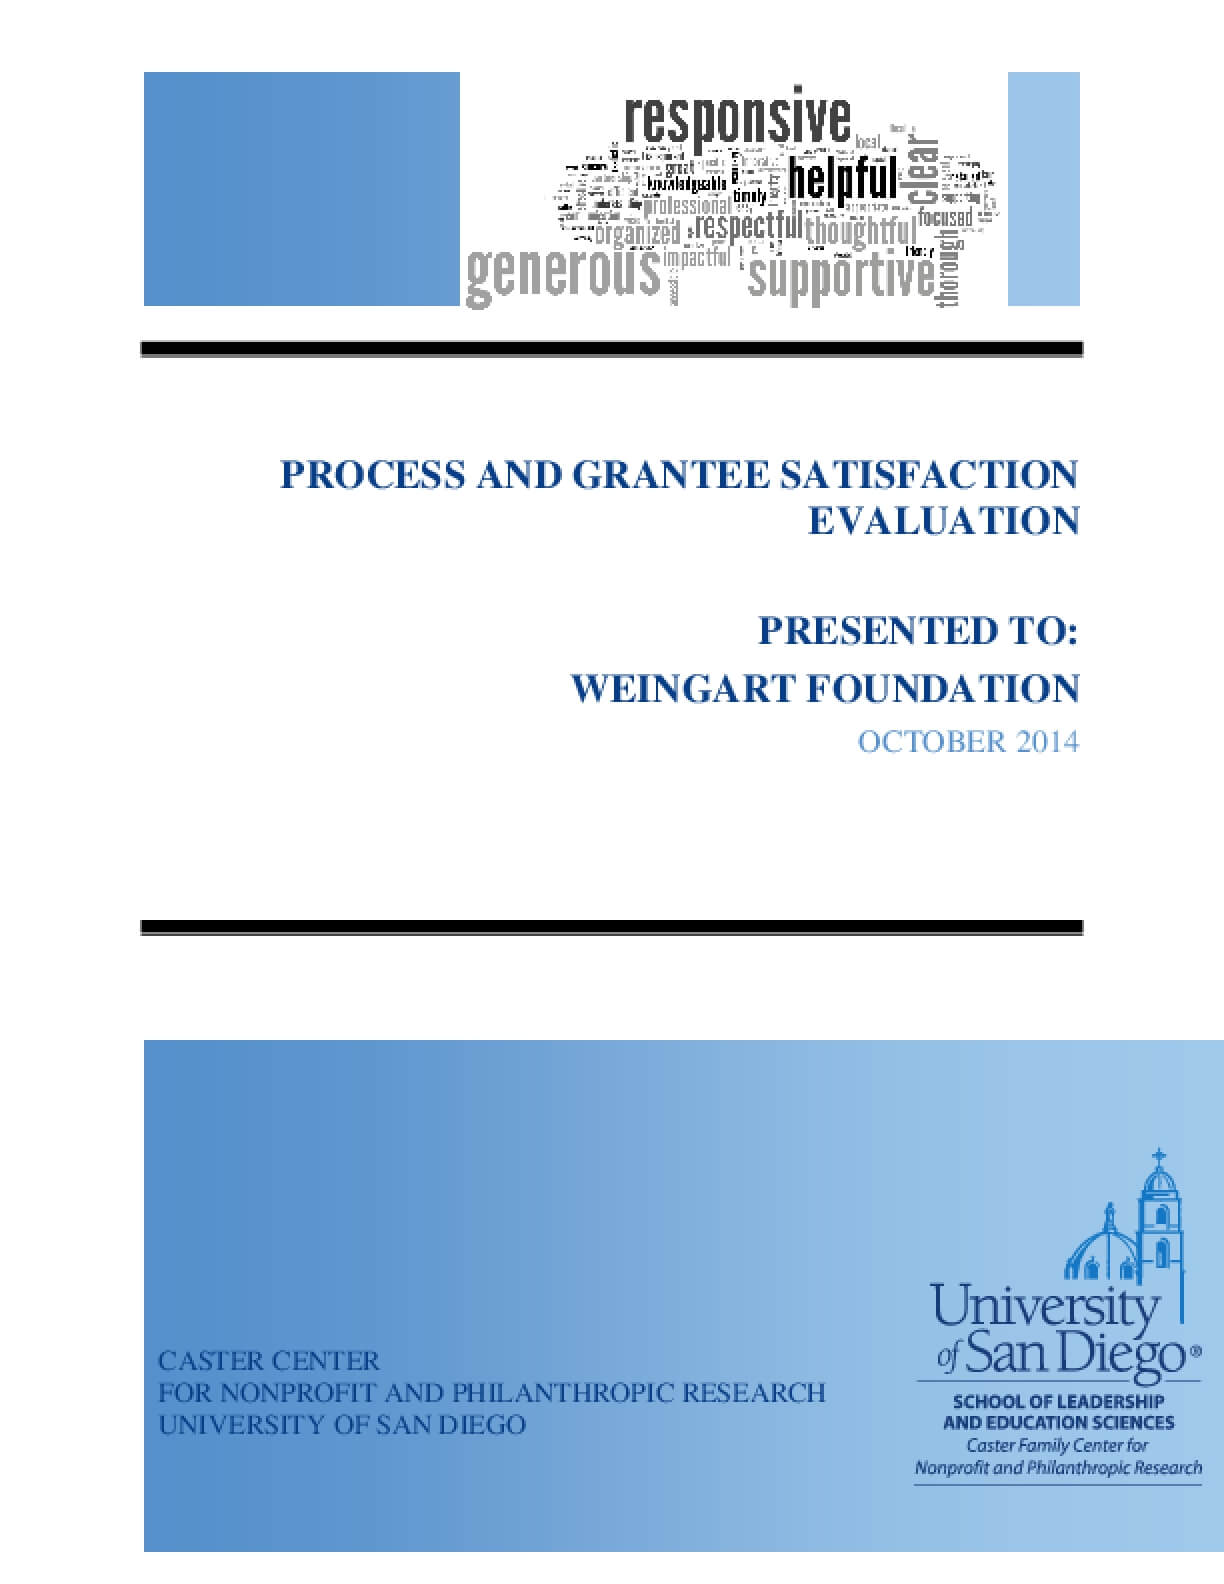 Process and Grantee Satisfaction Evaluation